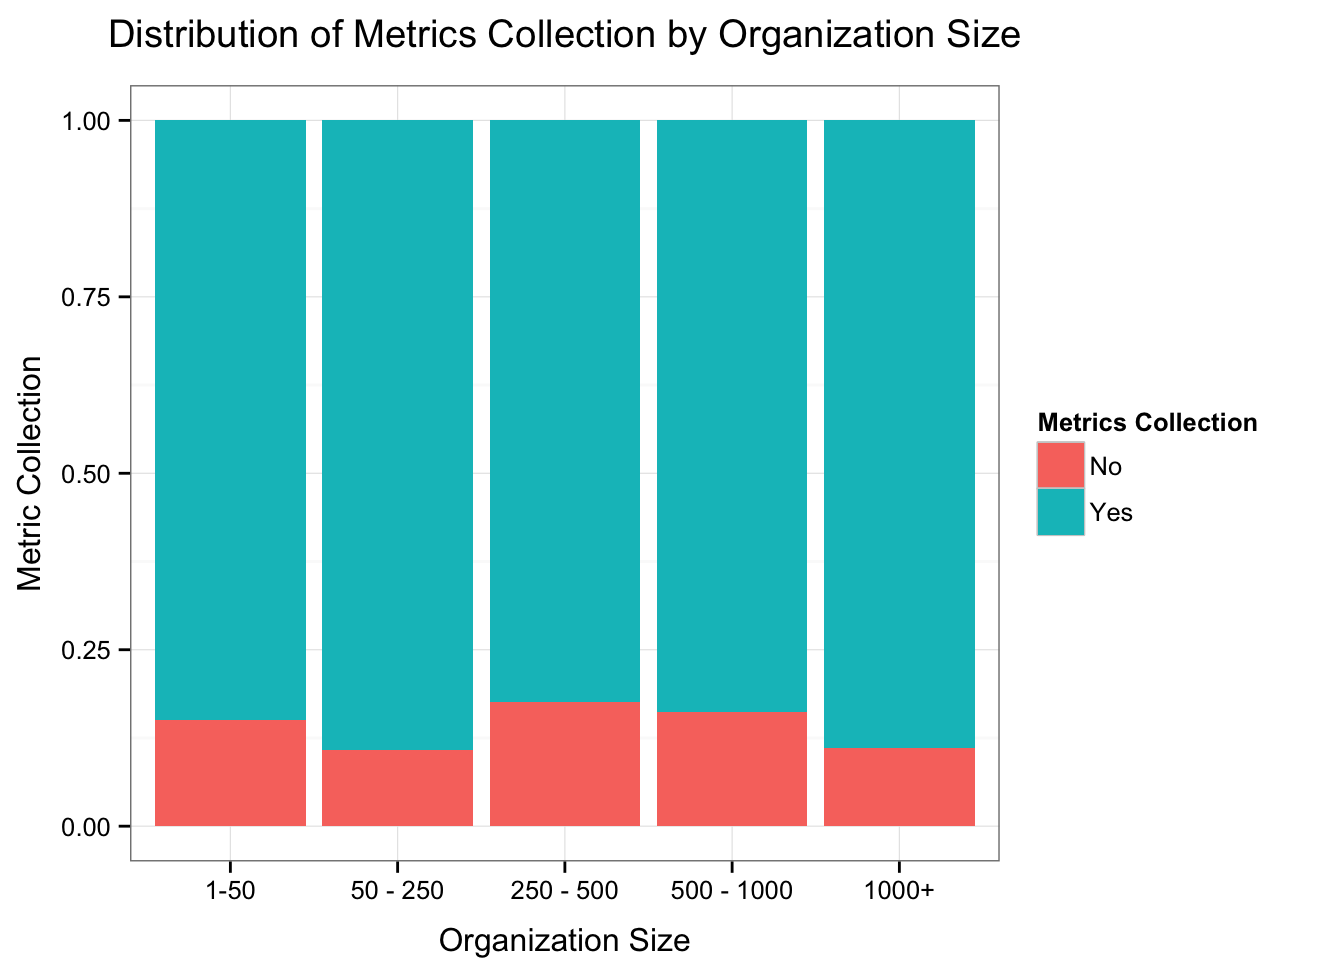 Metrics Collection by Organization Size